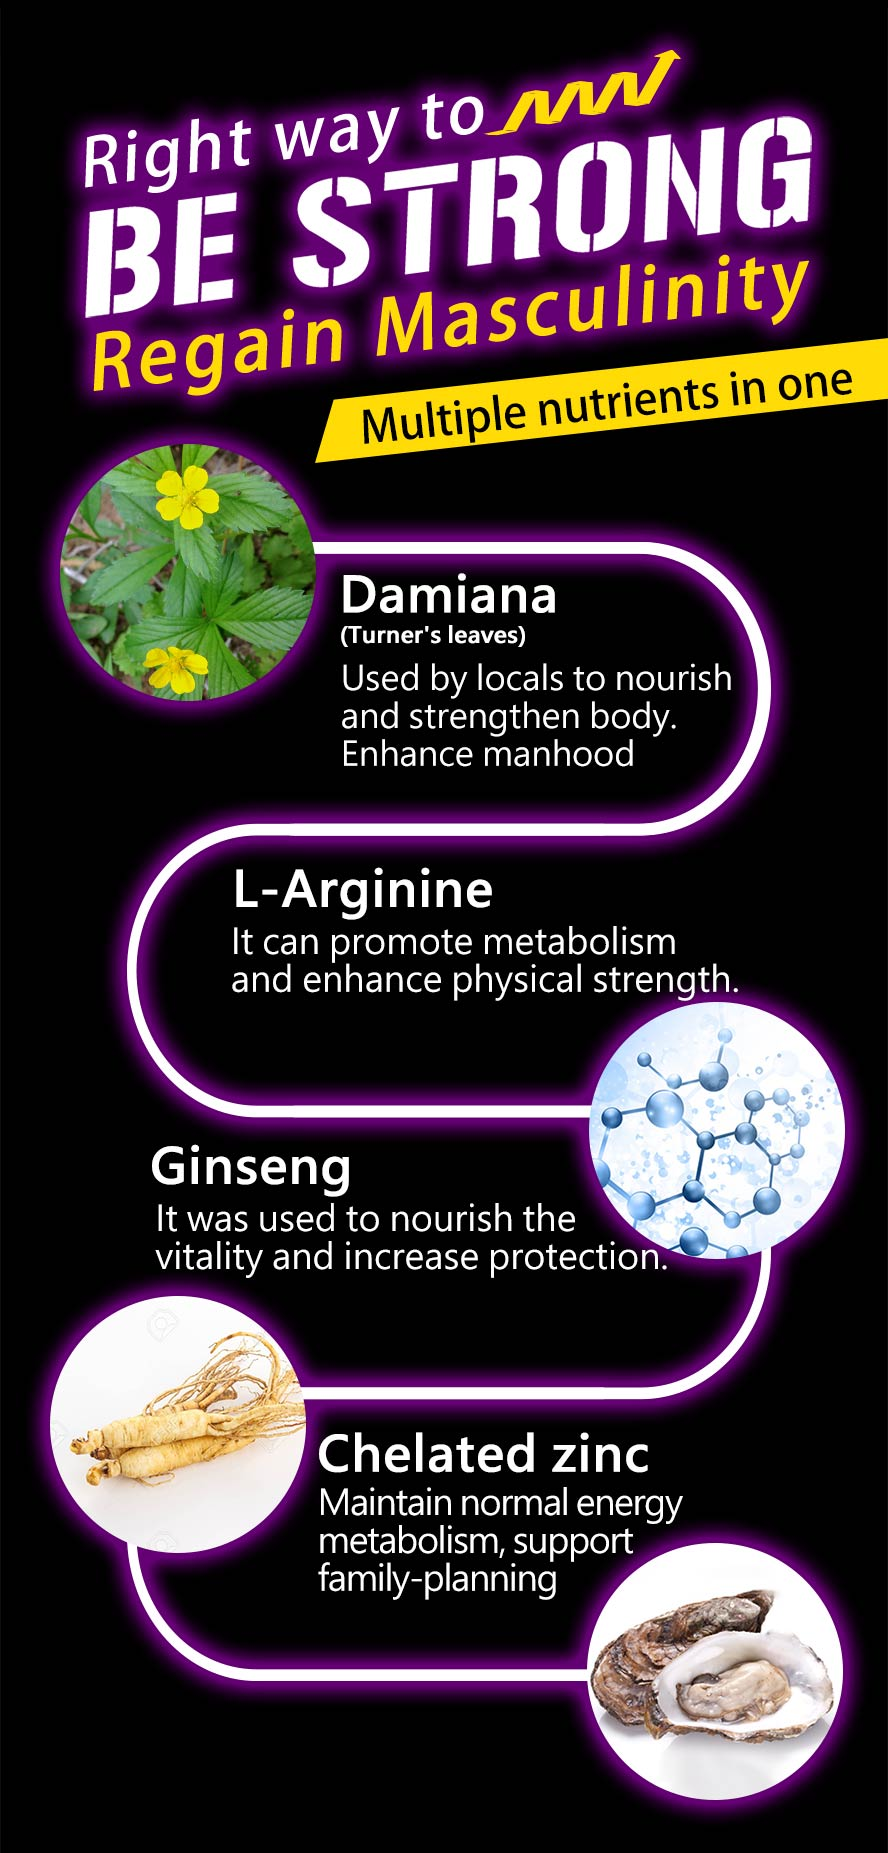 UNIQMAN Damiana contains L-Arginine to help enhance physical strength